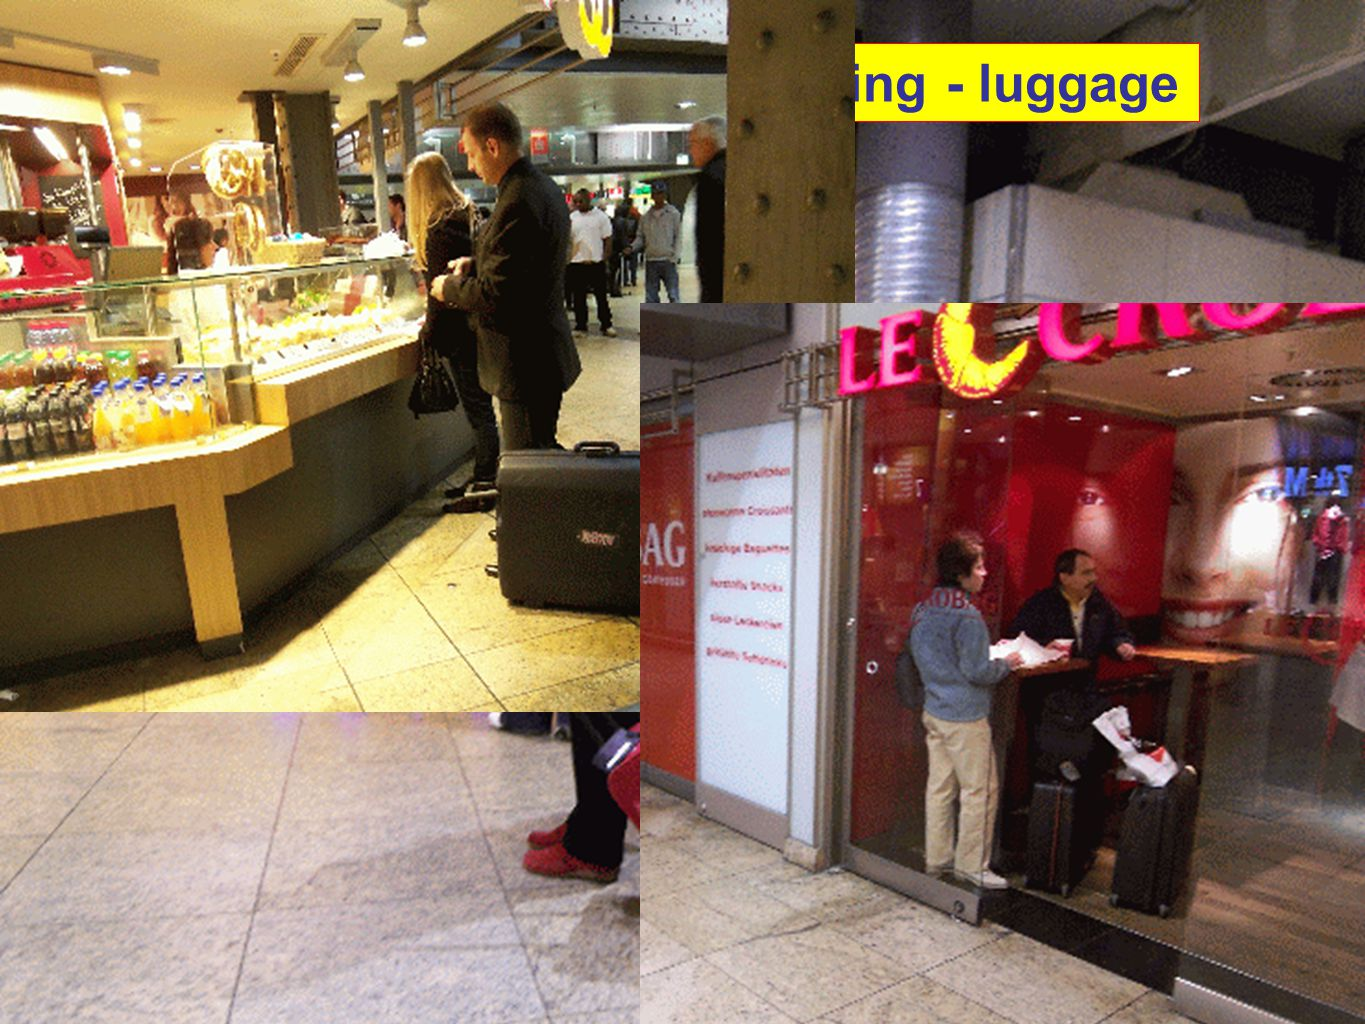 shopping – eating/drinking - luggage